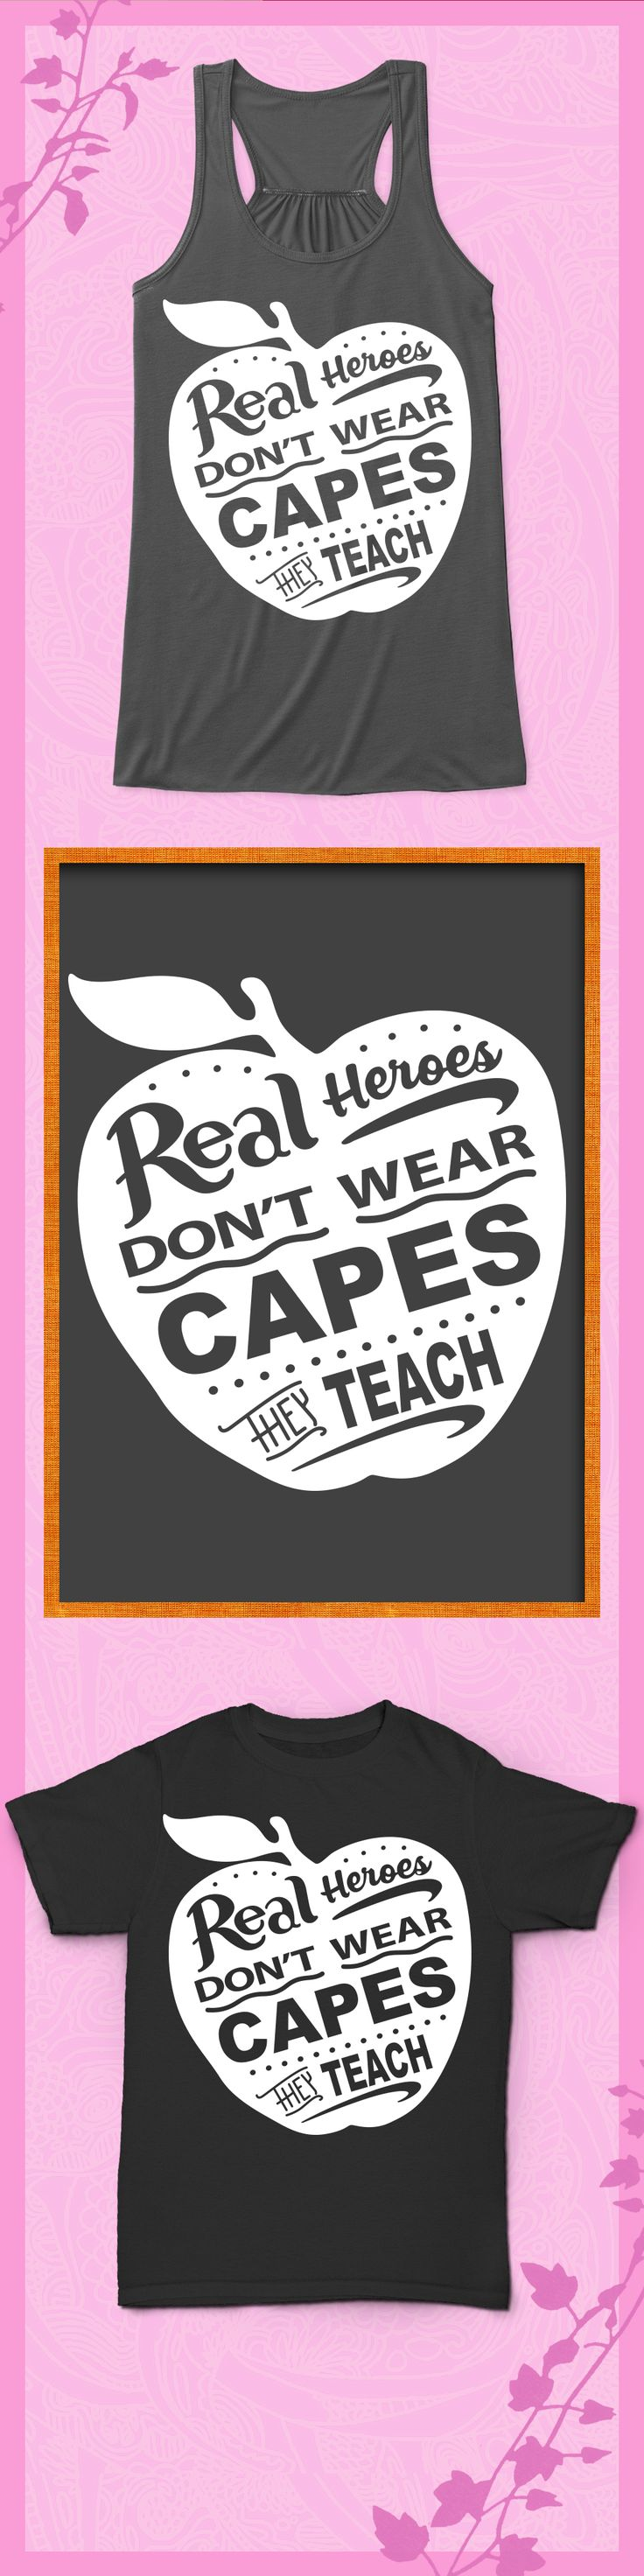 Teachers Are Real Heroes - Limited edition. Order 2 or more for friends/family & save on shipping! Makes a great gift!